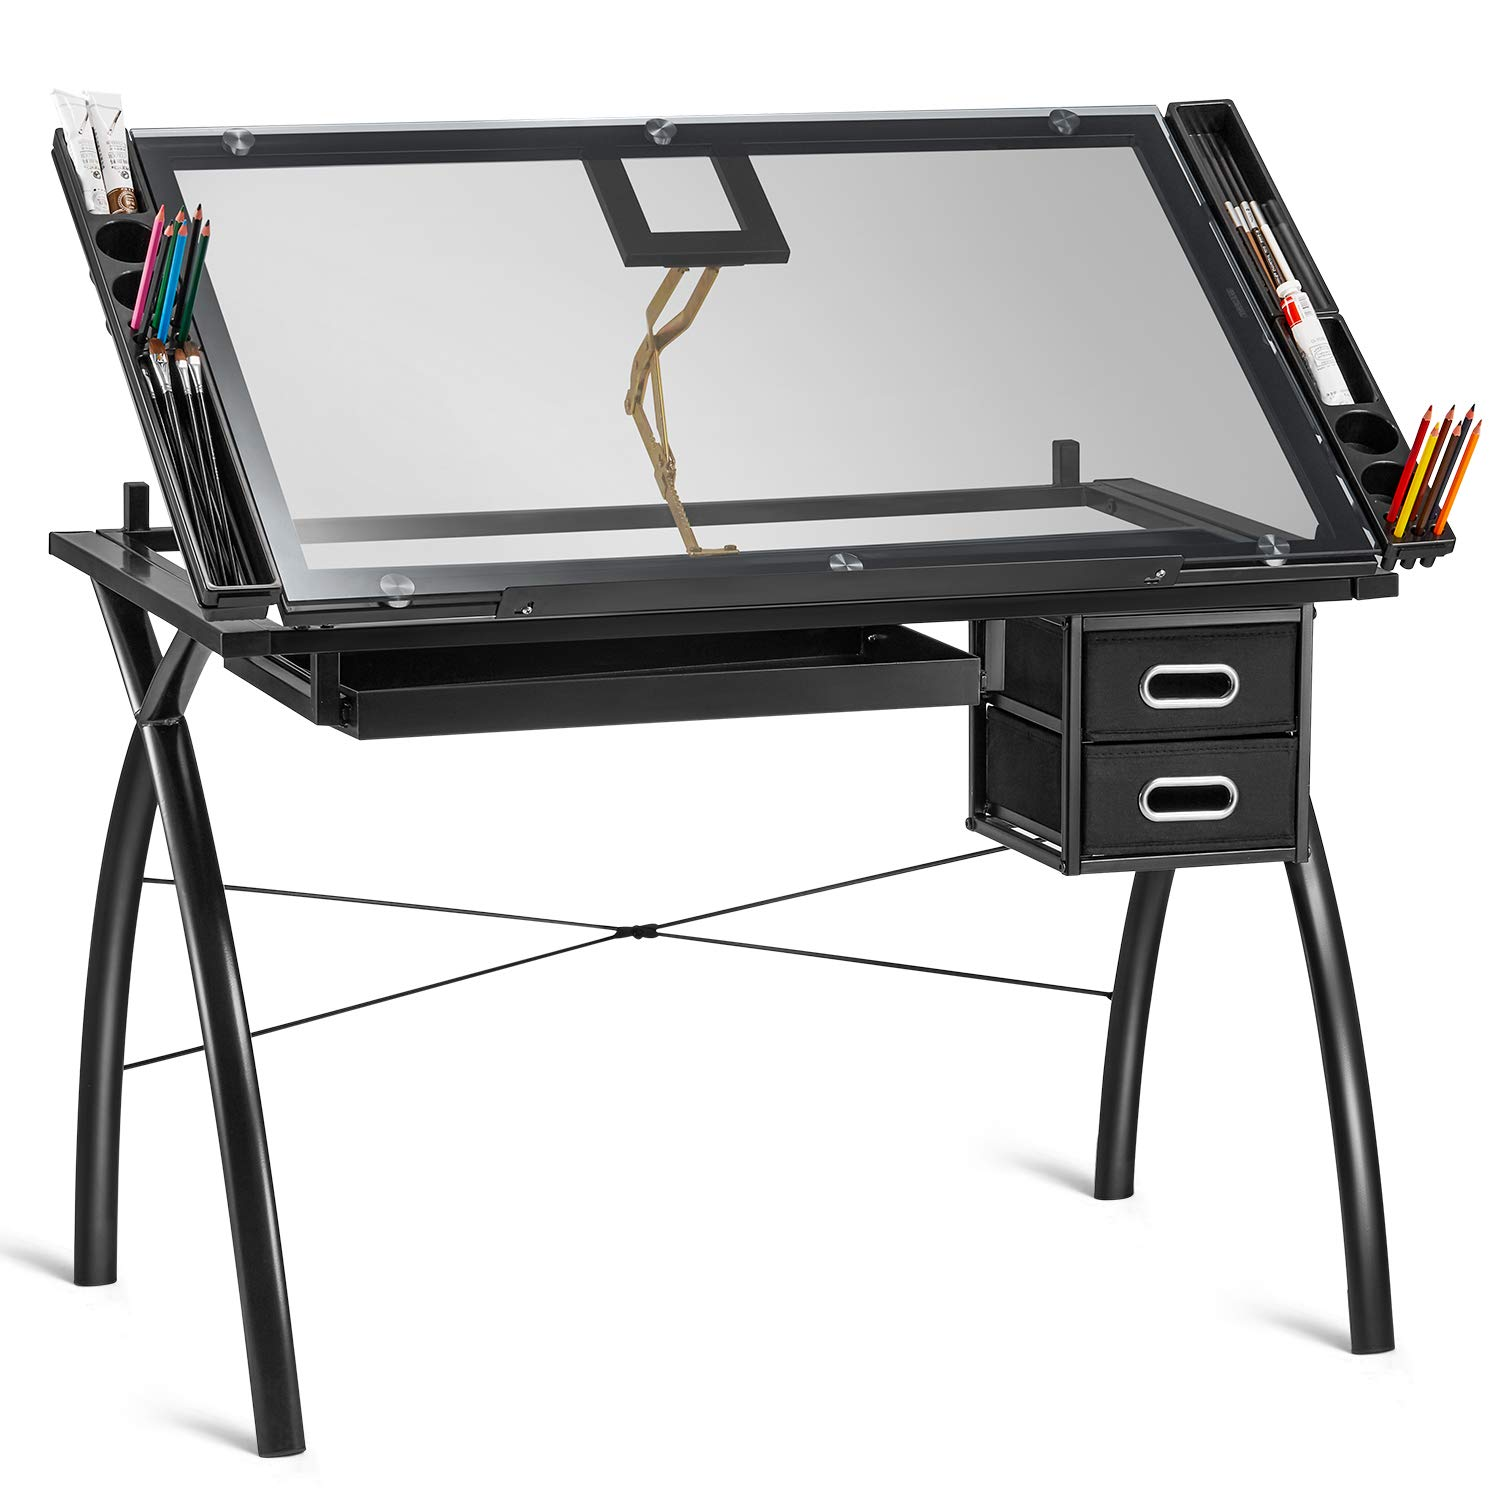 Kealive Height Adjustable Drafting Table, Tempered Glass Top Drawing Desk Hobby Table Writing Studio Desk Art Craft Station with Drawers, 43.3×28.3×31.5 inches by kealive